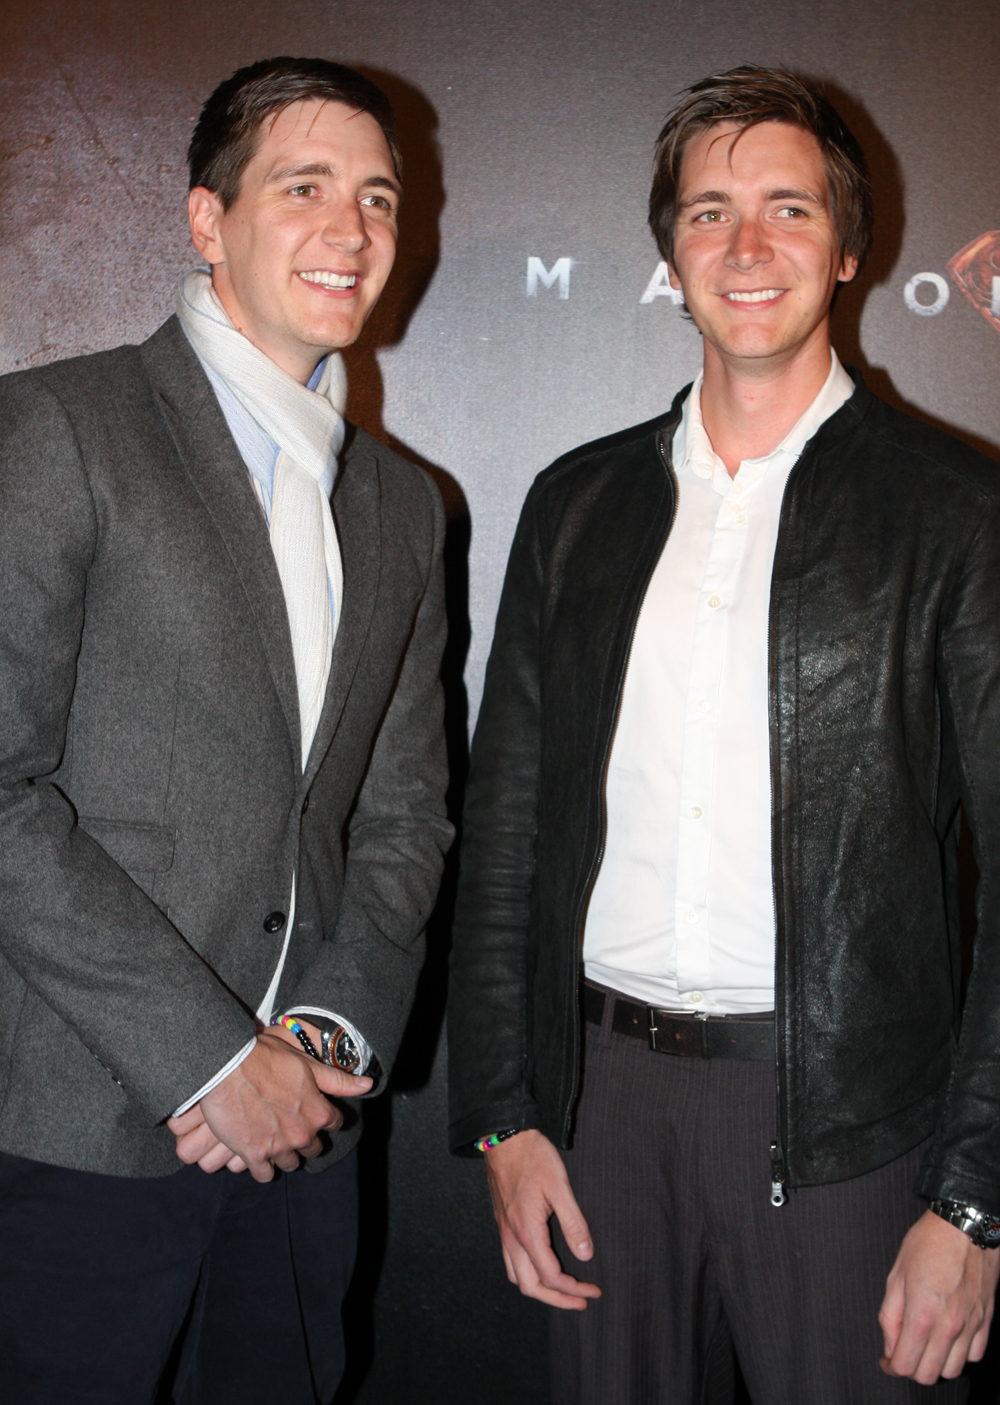 File:James, Oliver Phelps.jpg - Wikimedia Commons